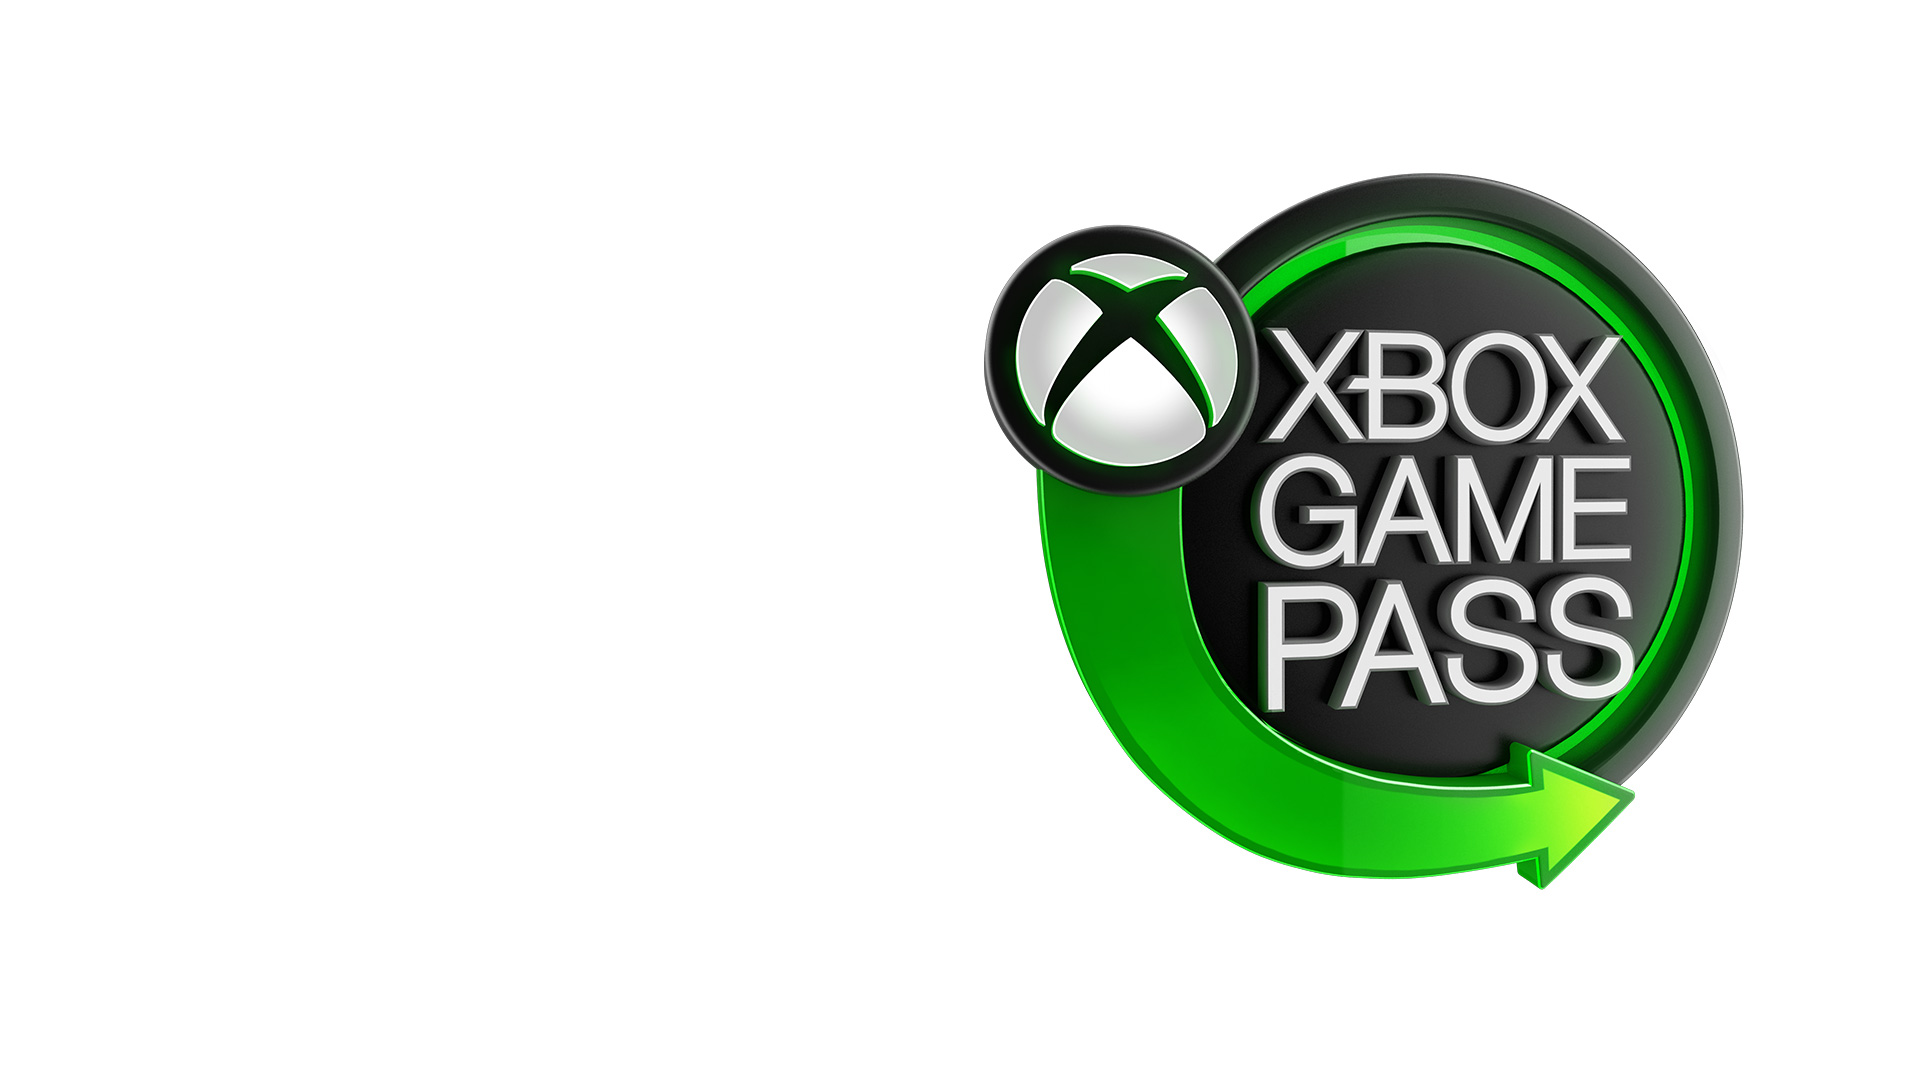 Xbox Game Pass sign